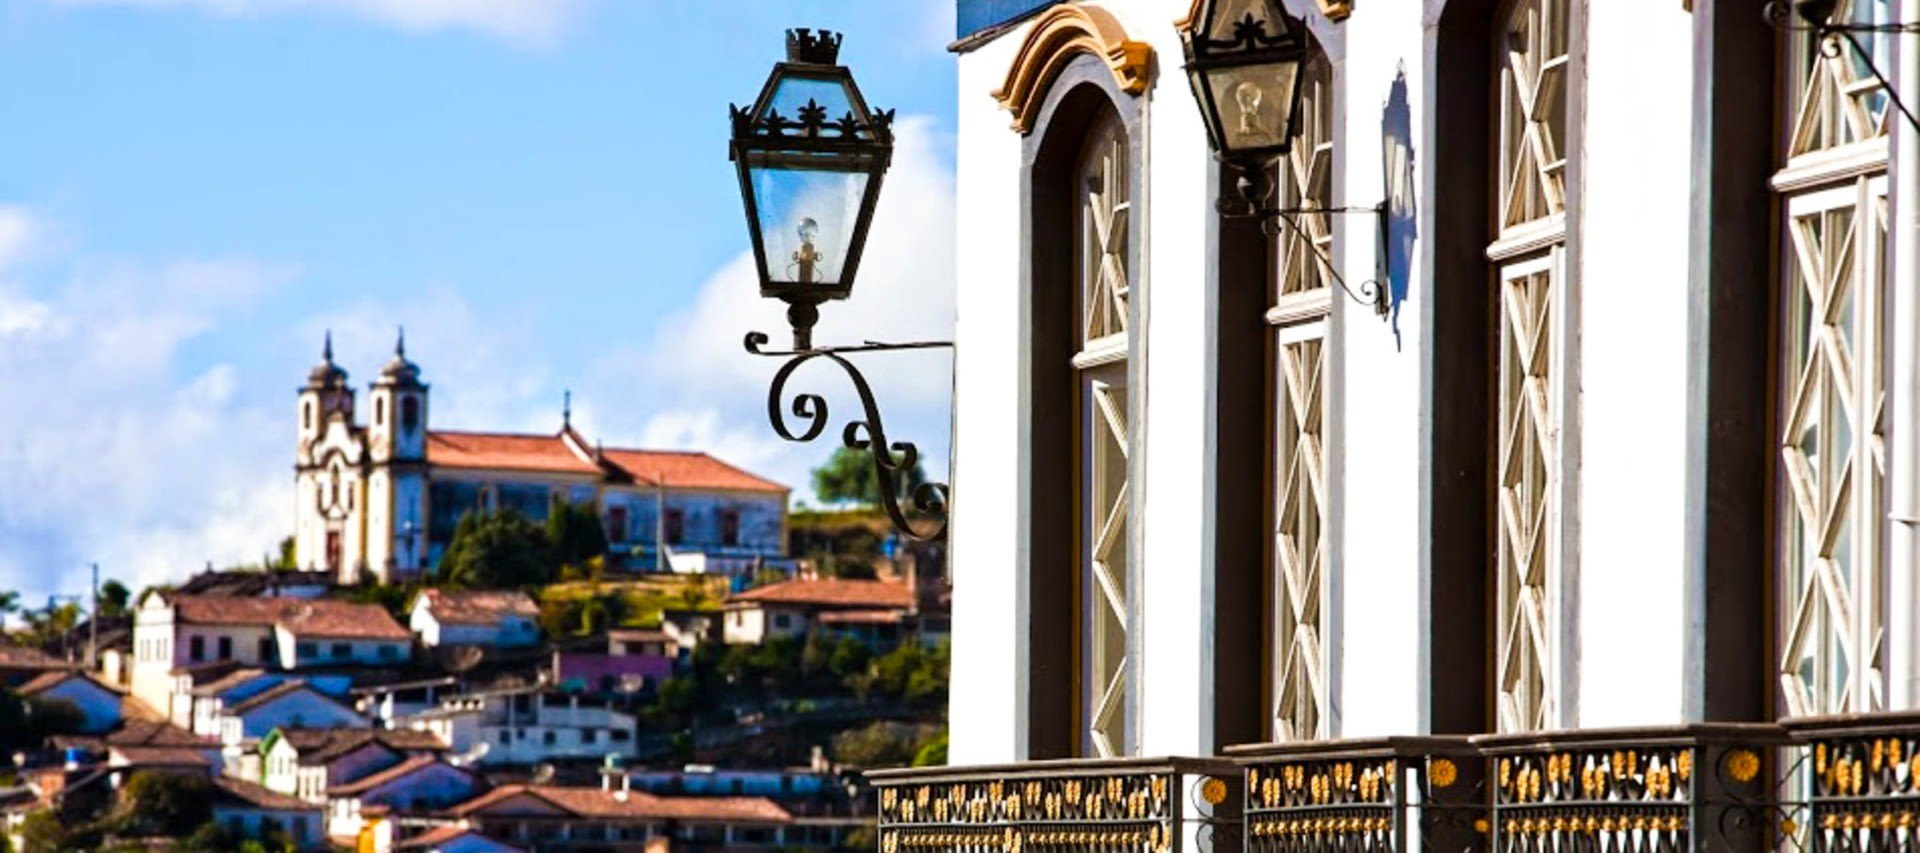 Buildings of Ouro Preto, Brazil